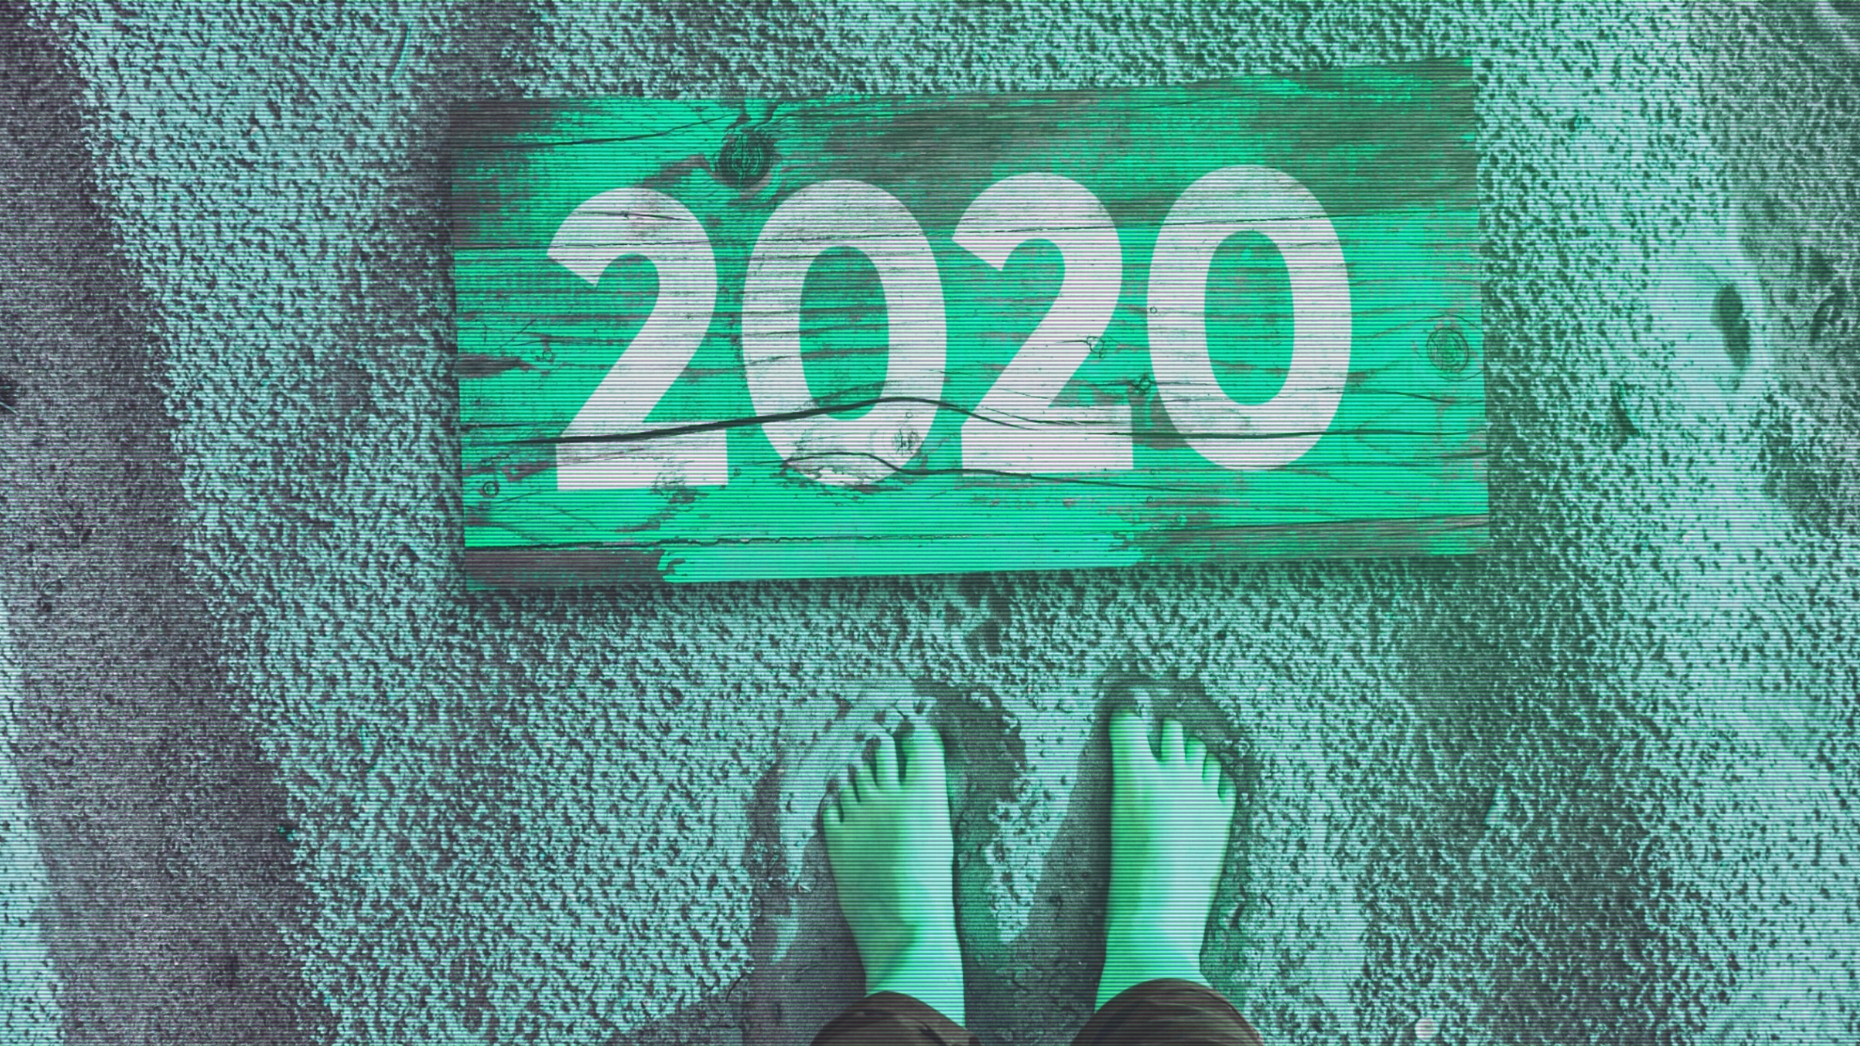 Keeping It Real: What's next in 2020?